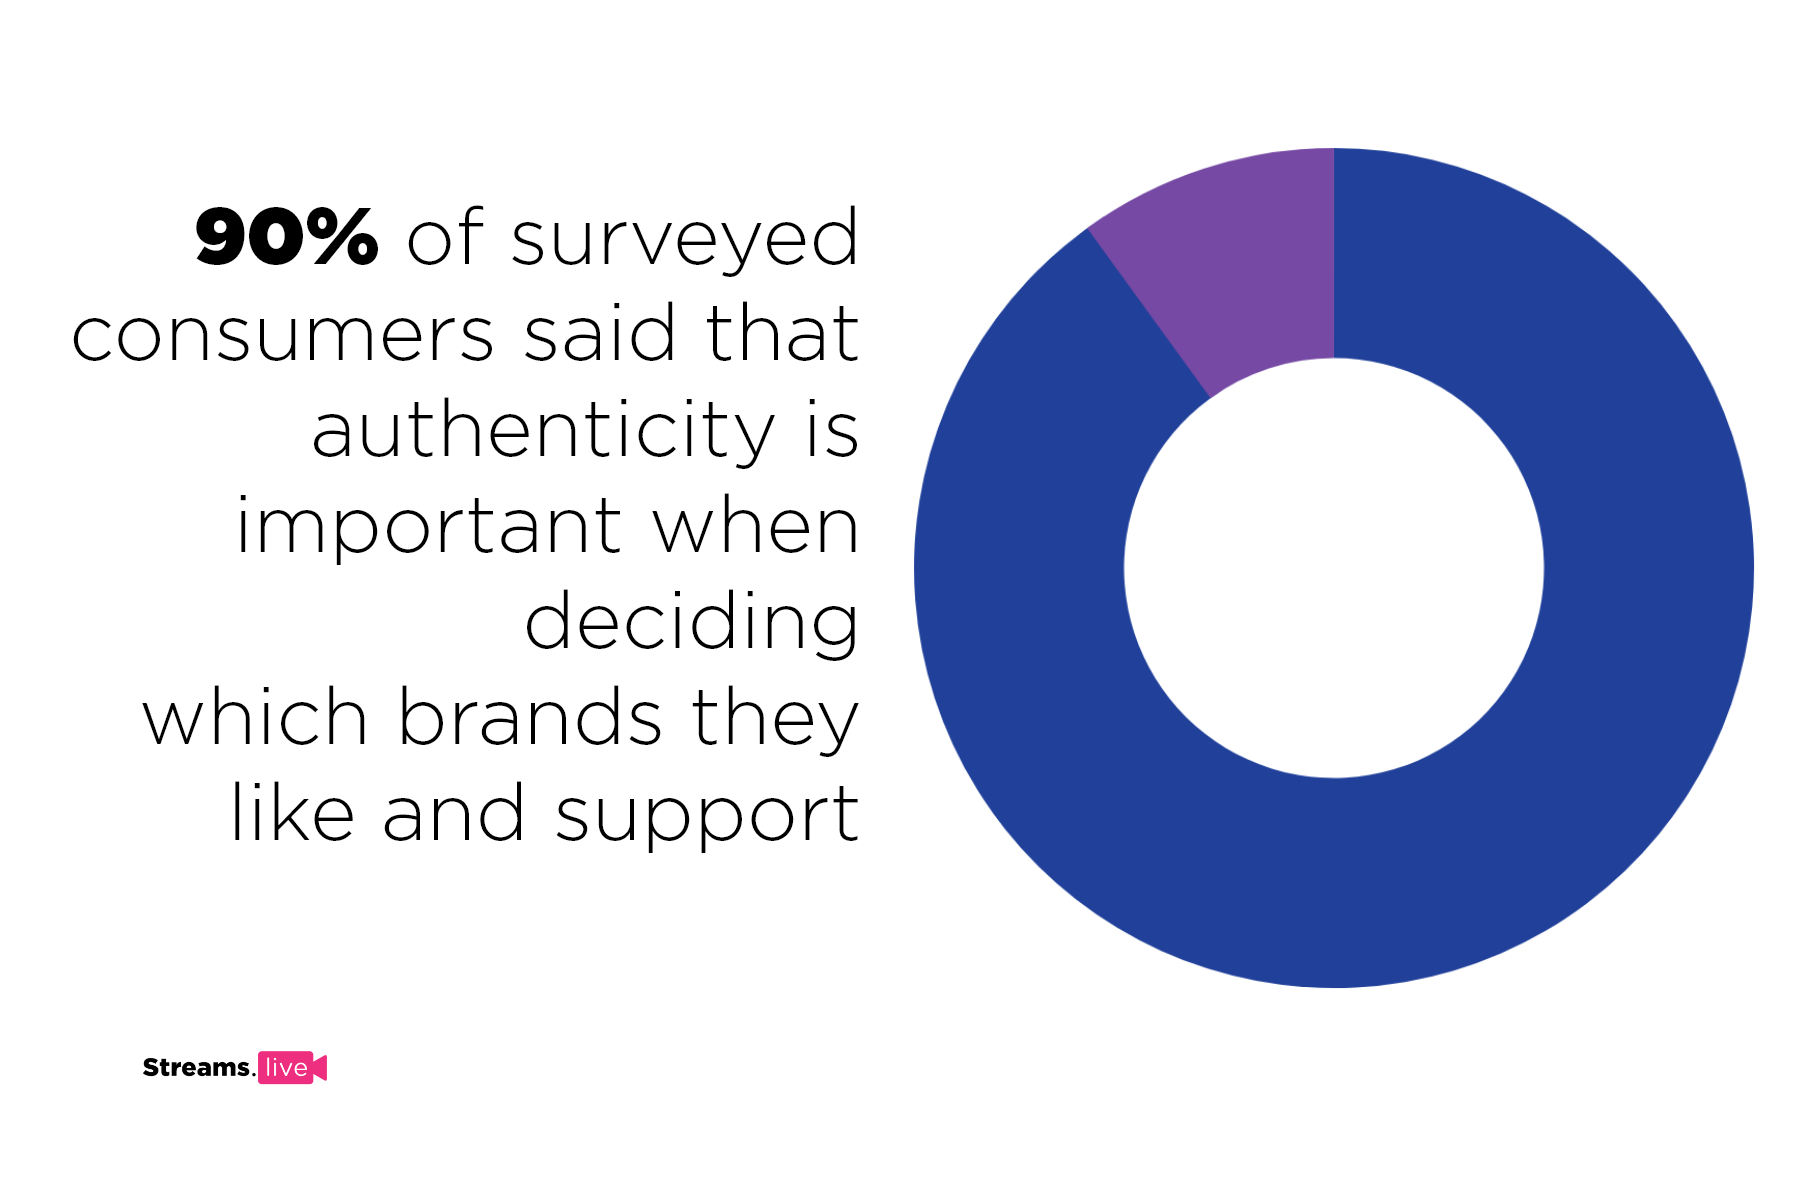 image showing the importance of authenticity for customers